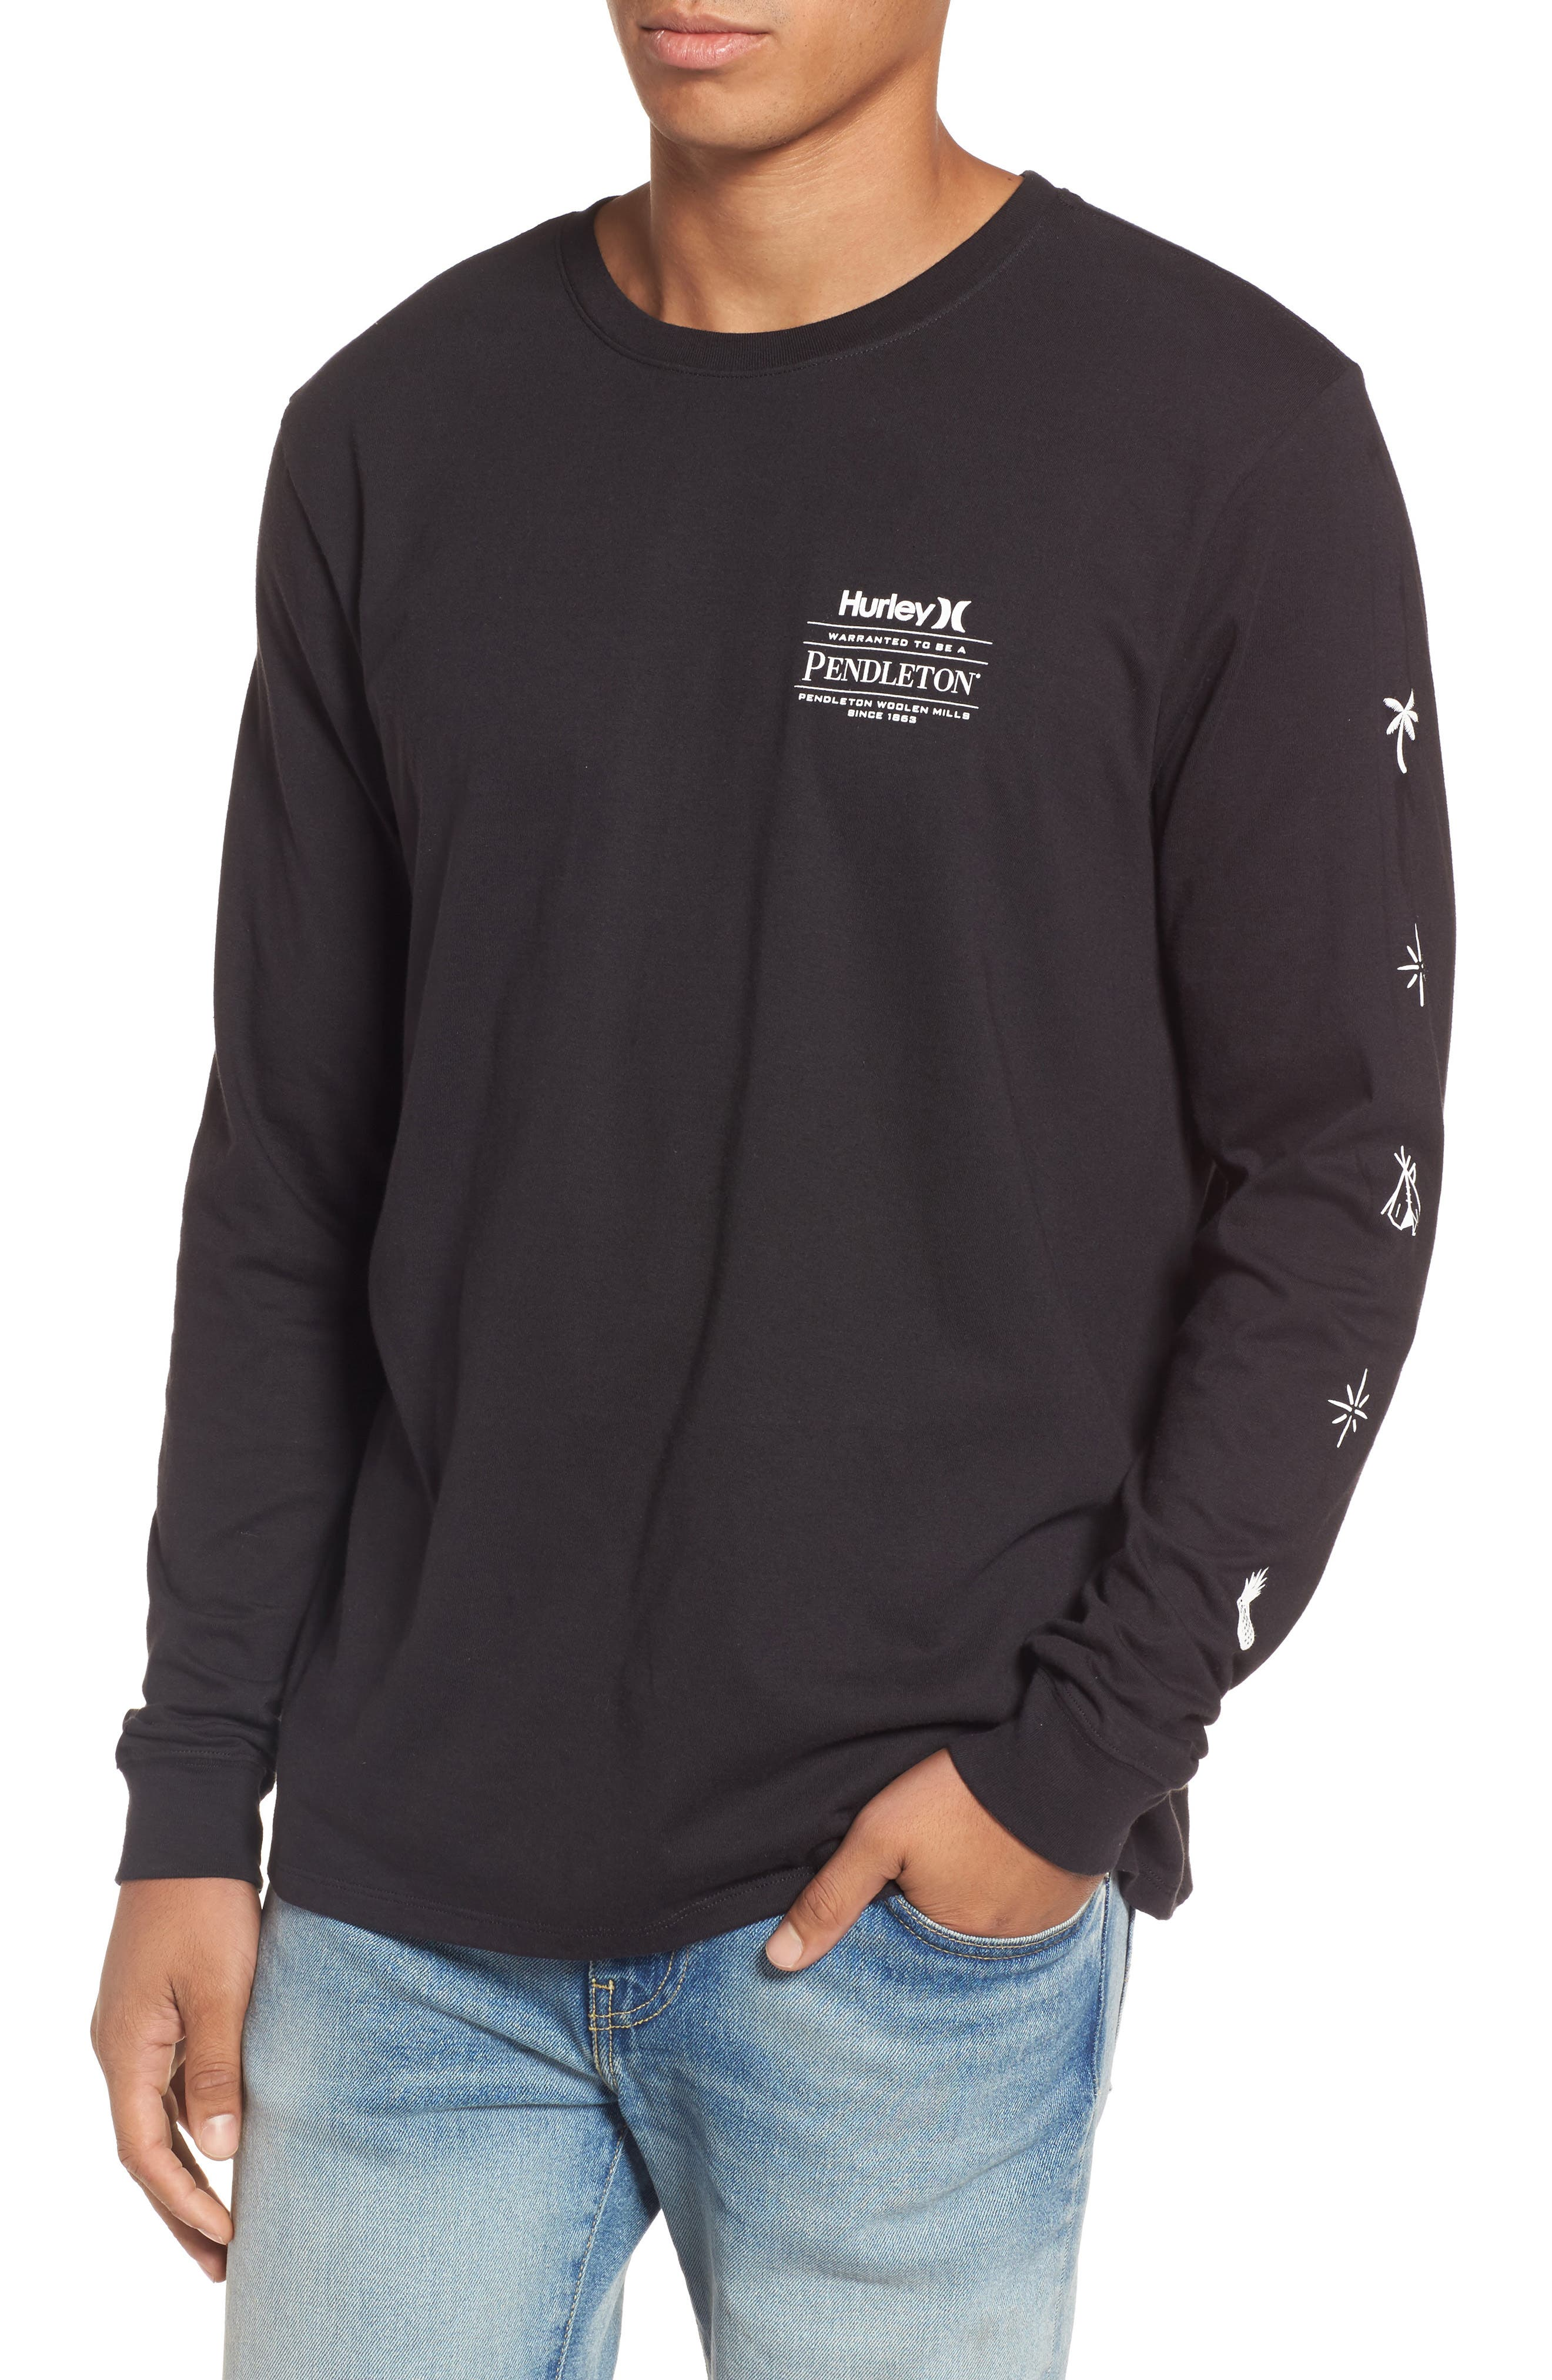 Hurley x Pendleton Long Sleeve T-Shirt